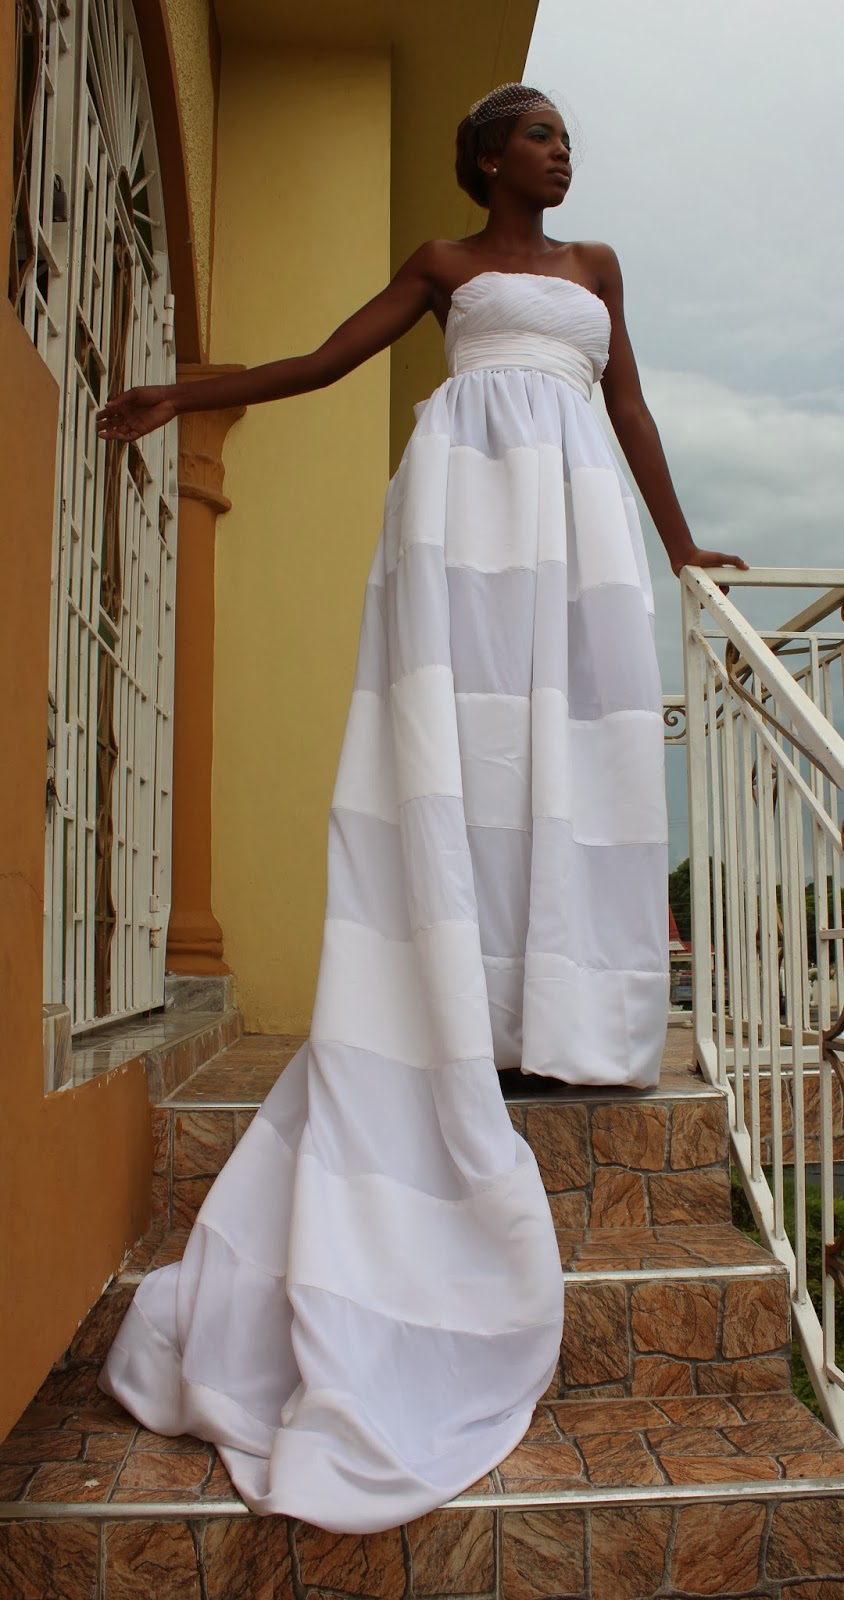 Wheat less in jamaica tying the knot in jamaica wedding for Cost to rent wedding dress in jamaica